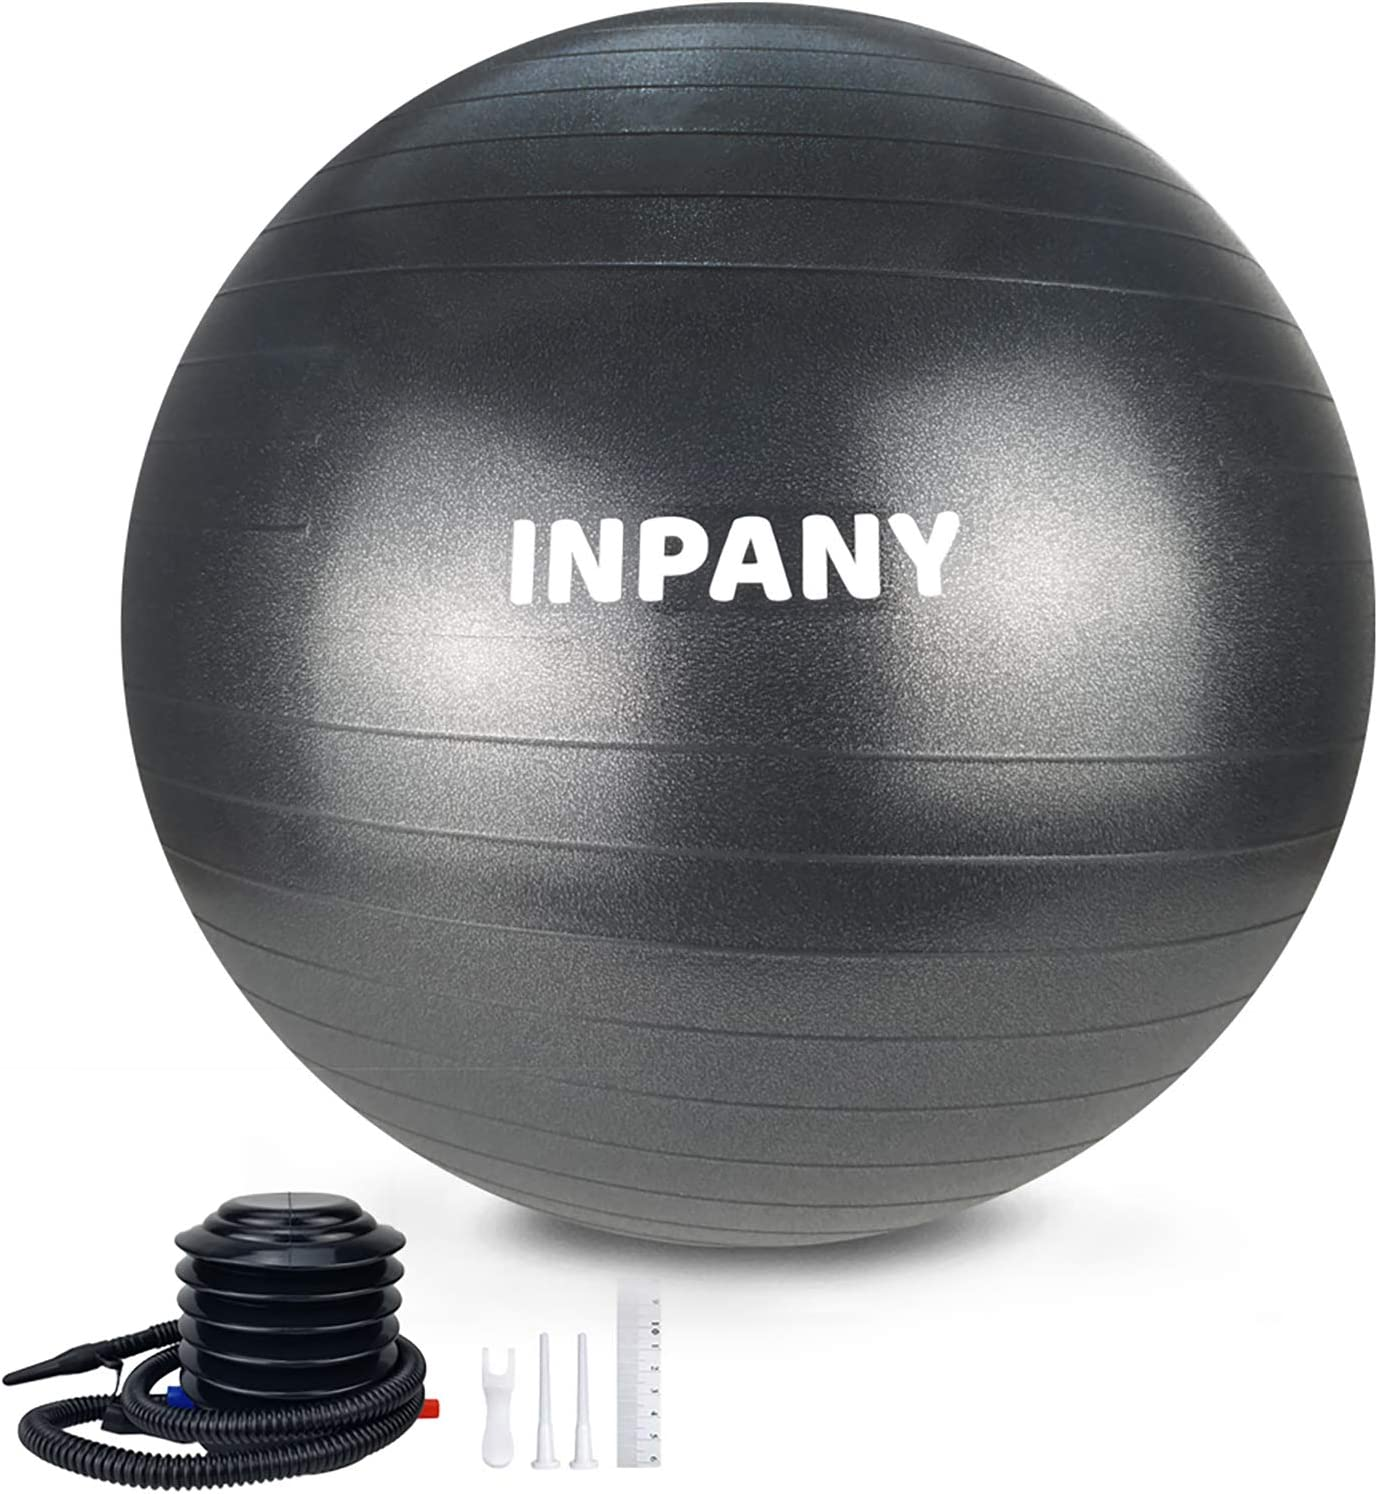 Trideer Exercise Ball 45-85cm Extra Thick Yoga Ball Chair Heavy Duty Stabilit...